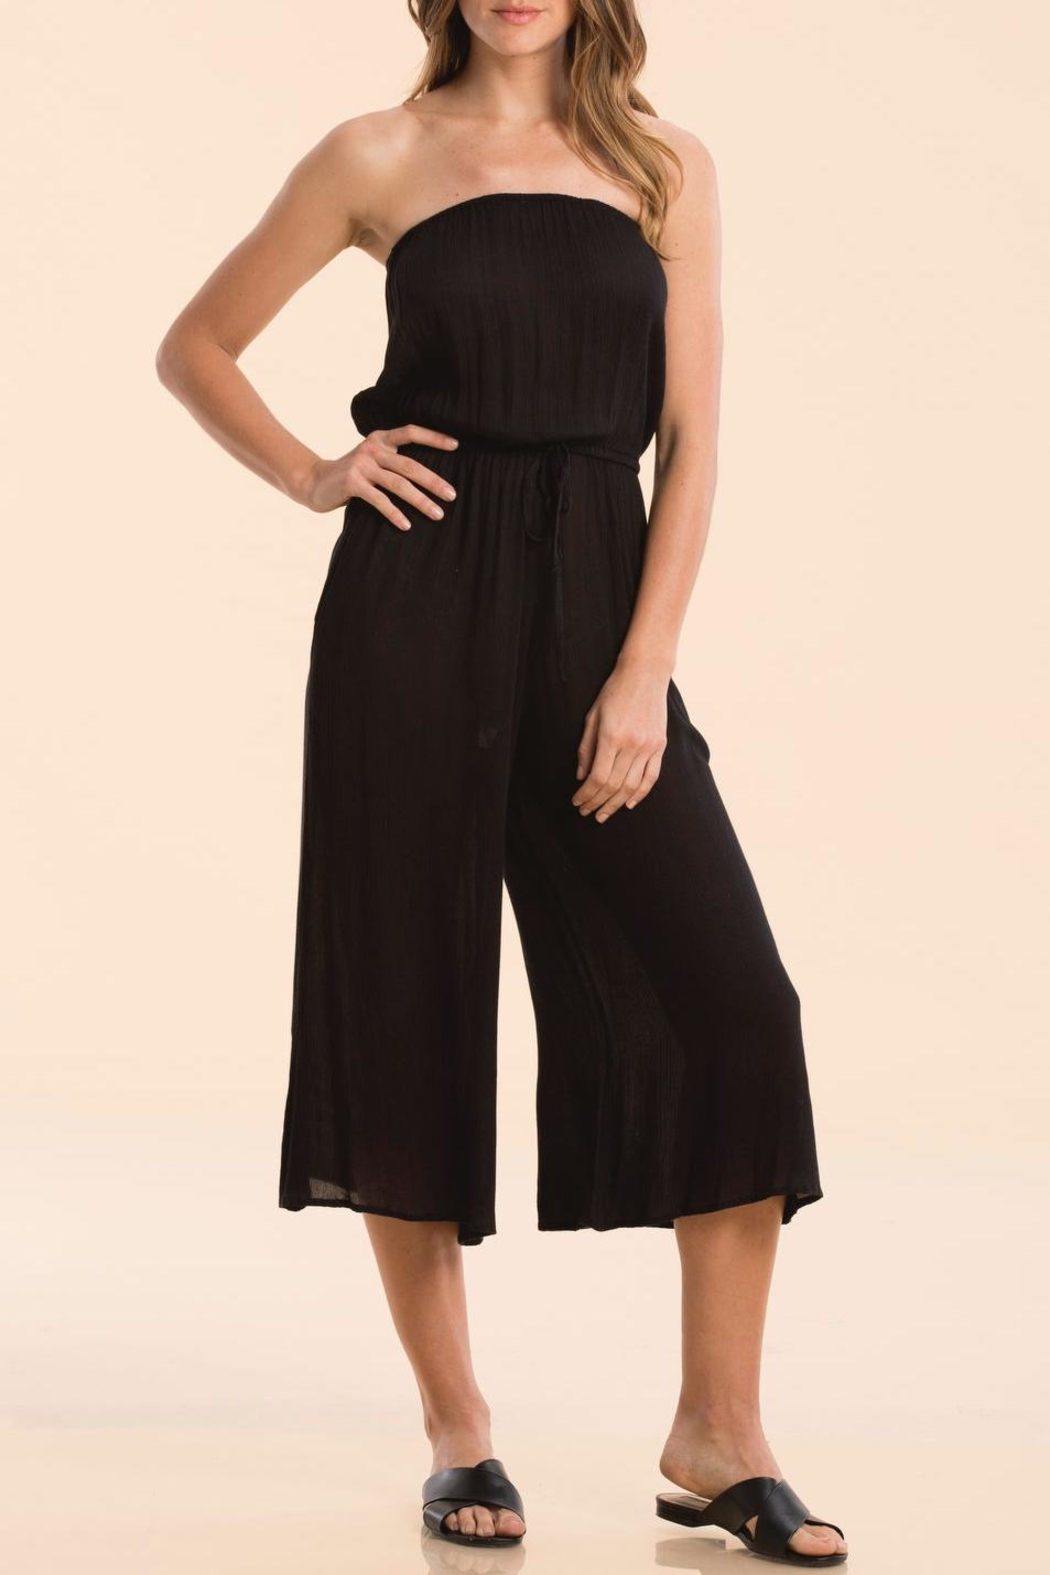 6504525ed02a Elan Strapless Culotte Jumpsuit from Ohio by The Co-Op on Camargo ...